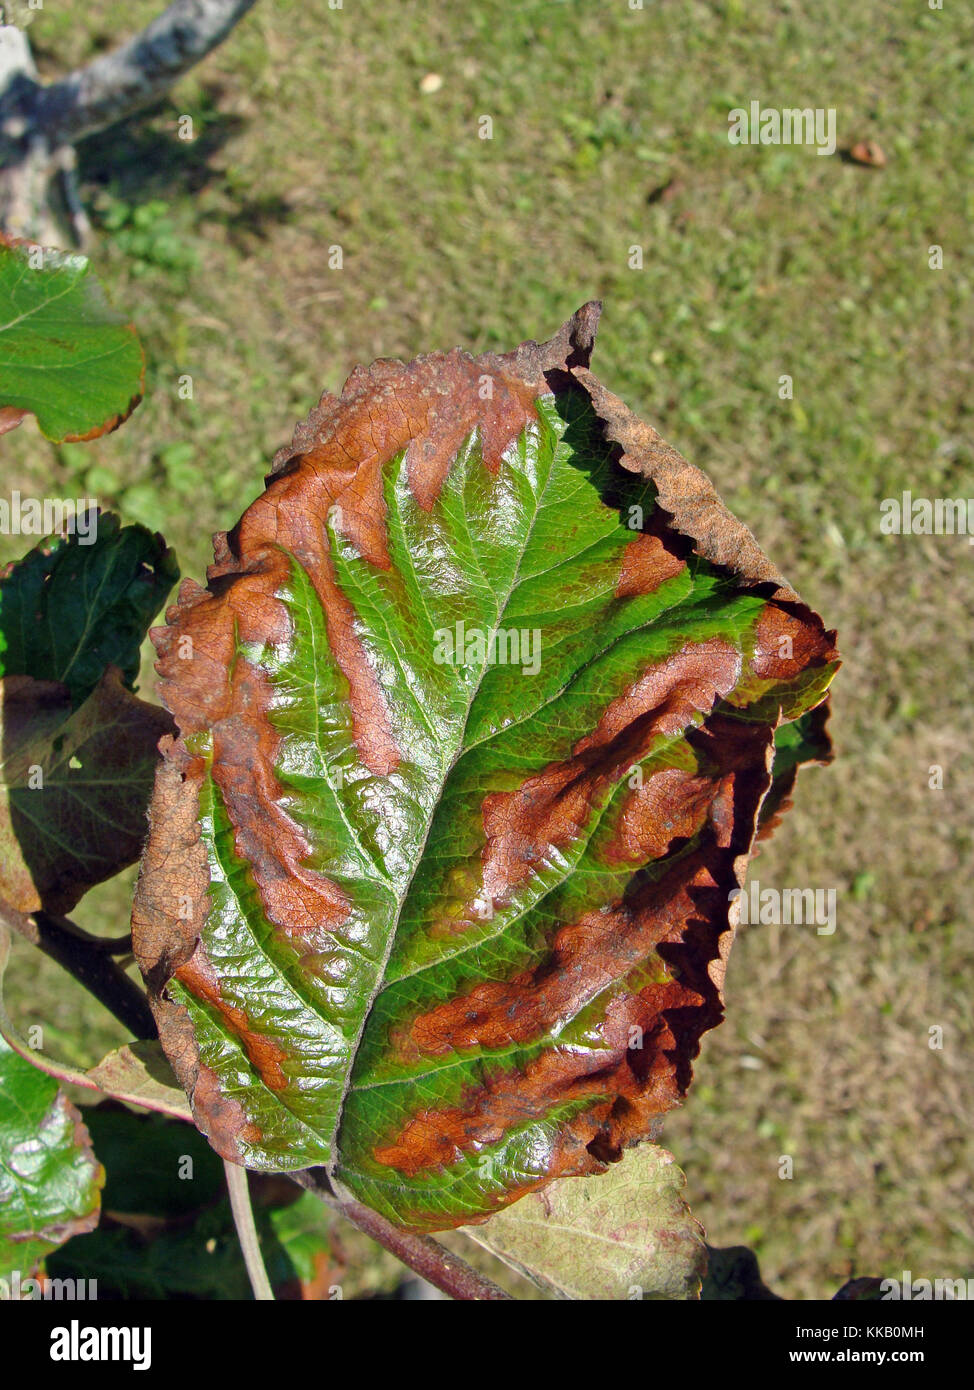 Apple tree leaves become brown from drought stress caused by fire blight or rodent damaged roots - Stock Image